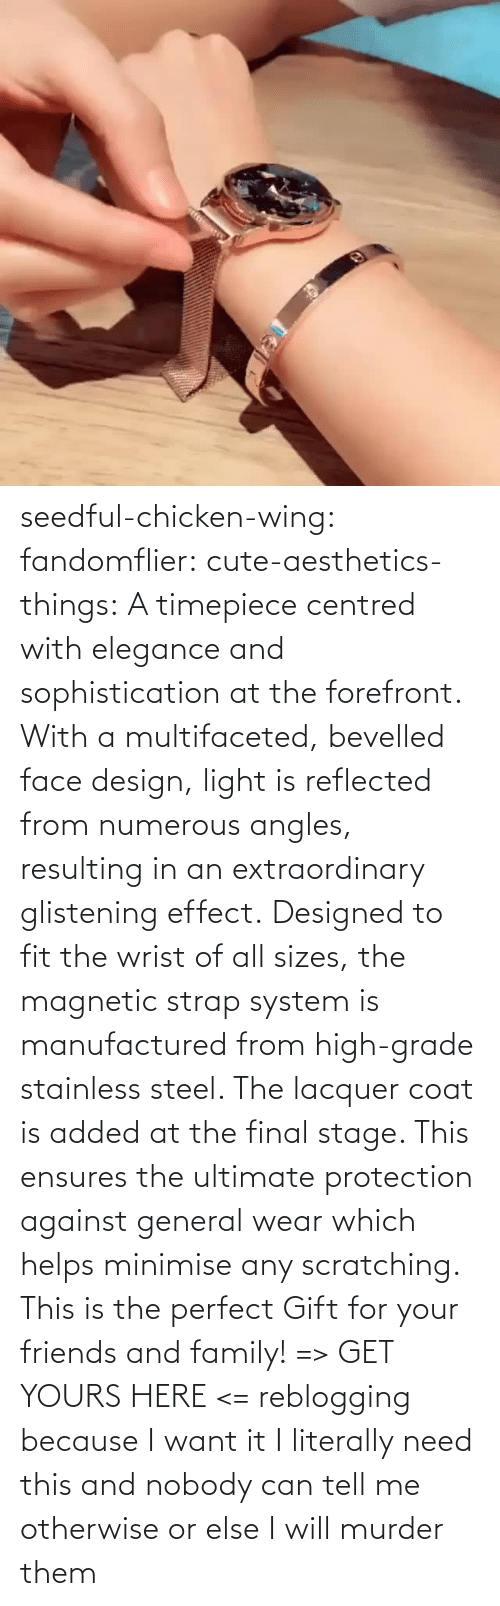 Which: seedful-chicken-wing: fandomflier:  cute-aesthetics-things:   A timepiece centred with elegance and sophistication at the forefront. With a multifaceted, bevelled face design, light is reflected from numerous angles, resulting in an extraordinary glistening effect. Designed to fit the wrist of all sizes, the magnetic strap system is manufactured from high-grade stainless steel. The lacquer coat is added at the final stage. This ensures the ultimate protection against general wear which helps minimise any scratching. This is the perfect Gift for your friends and family! => GET YOURS HERE <=   reblogging because I want it  I literally need this and nobody can tell me otherwise or else I will murder them